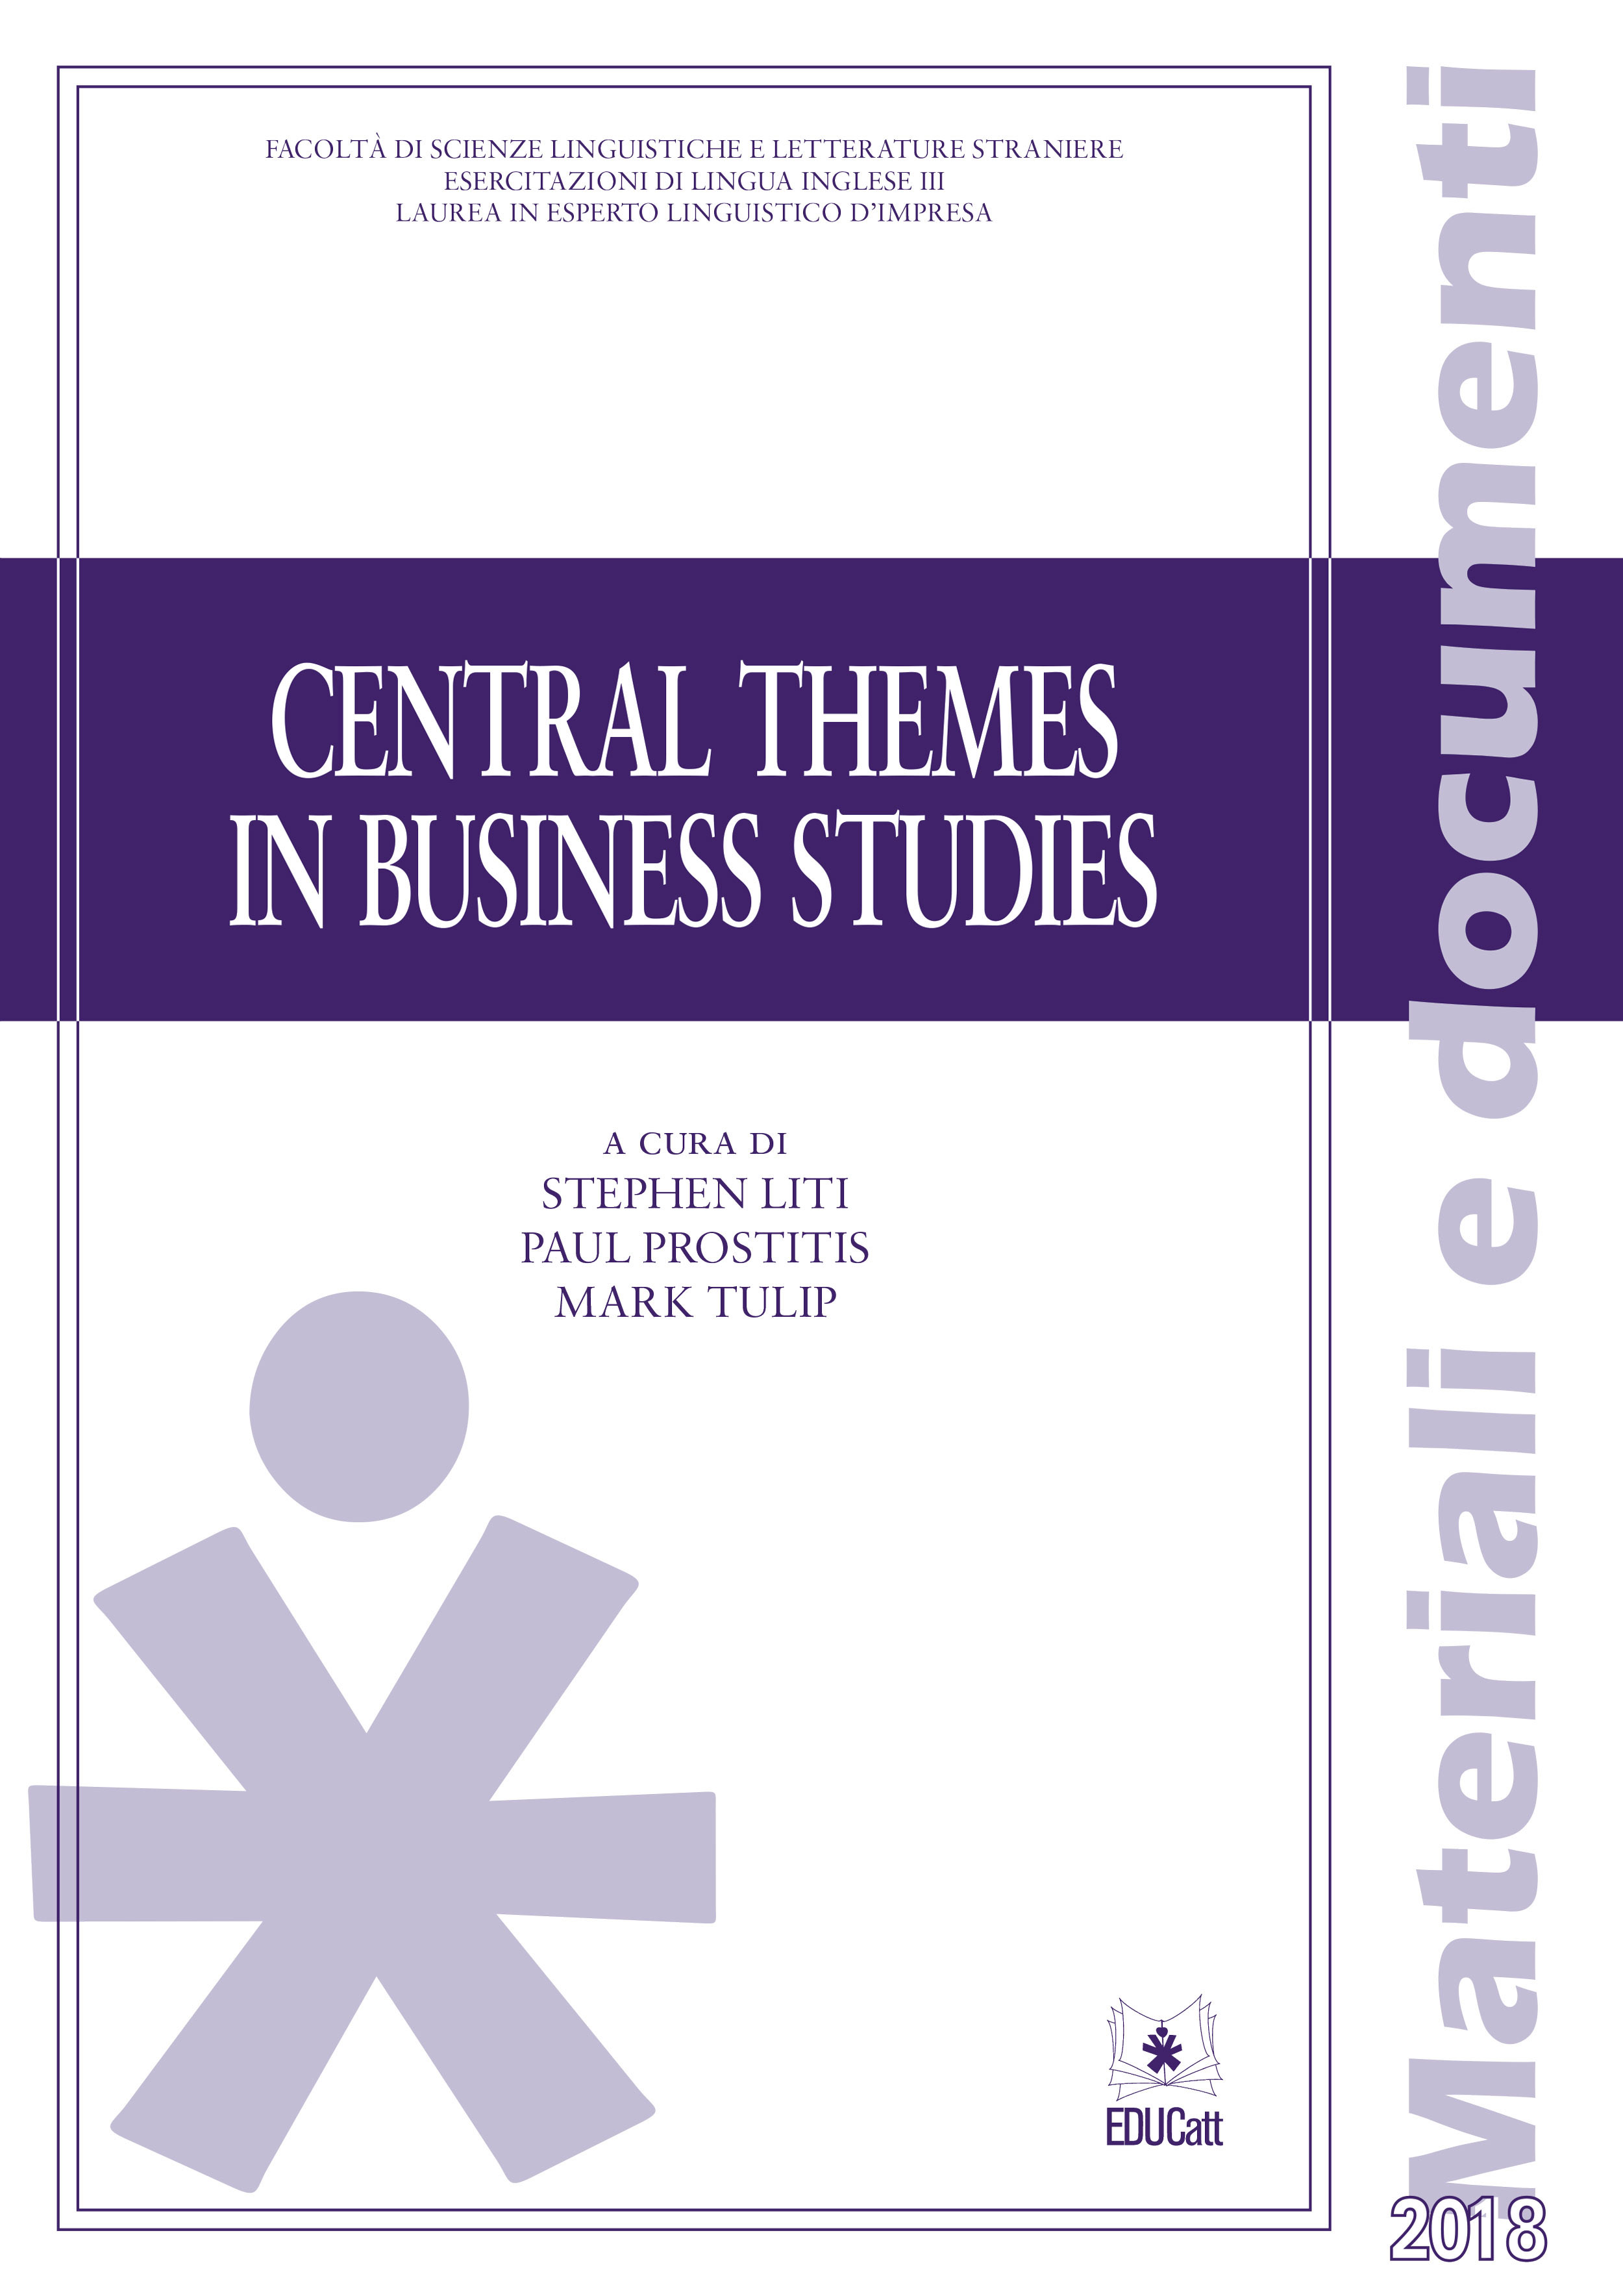 CENTRAL THEMES IN BUSINESS STUDIES 2018